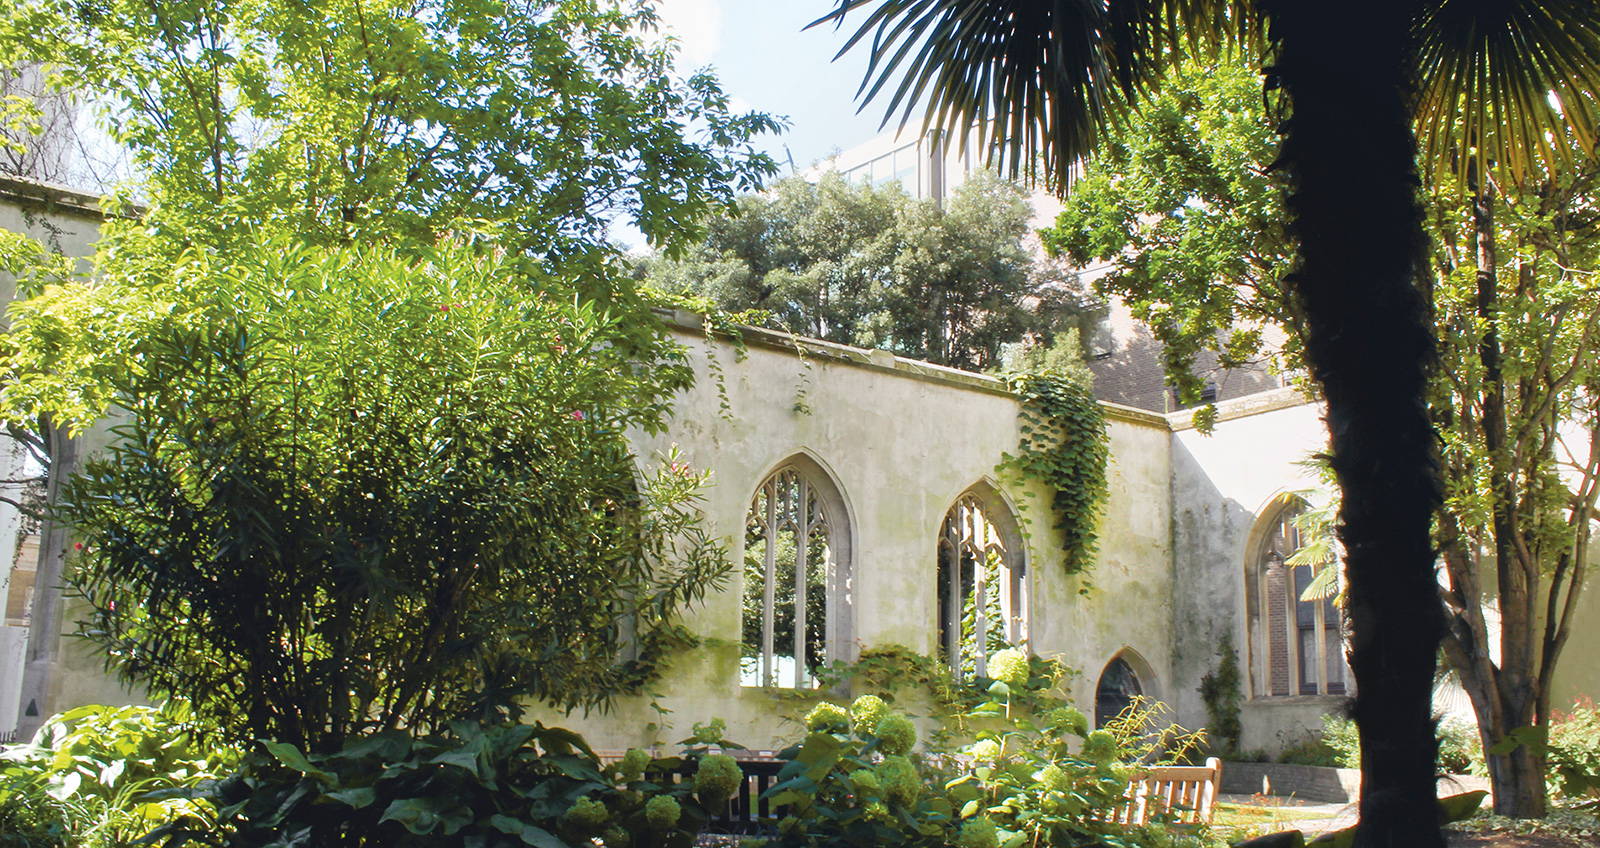 St Dunstan-In-the-East, London, UK. Photography courtesy City of London Corporation